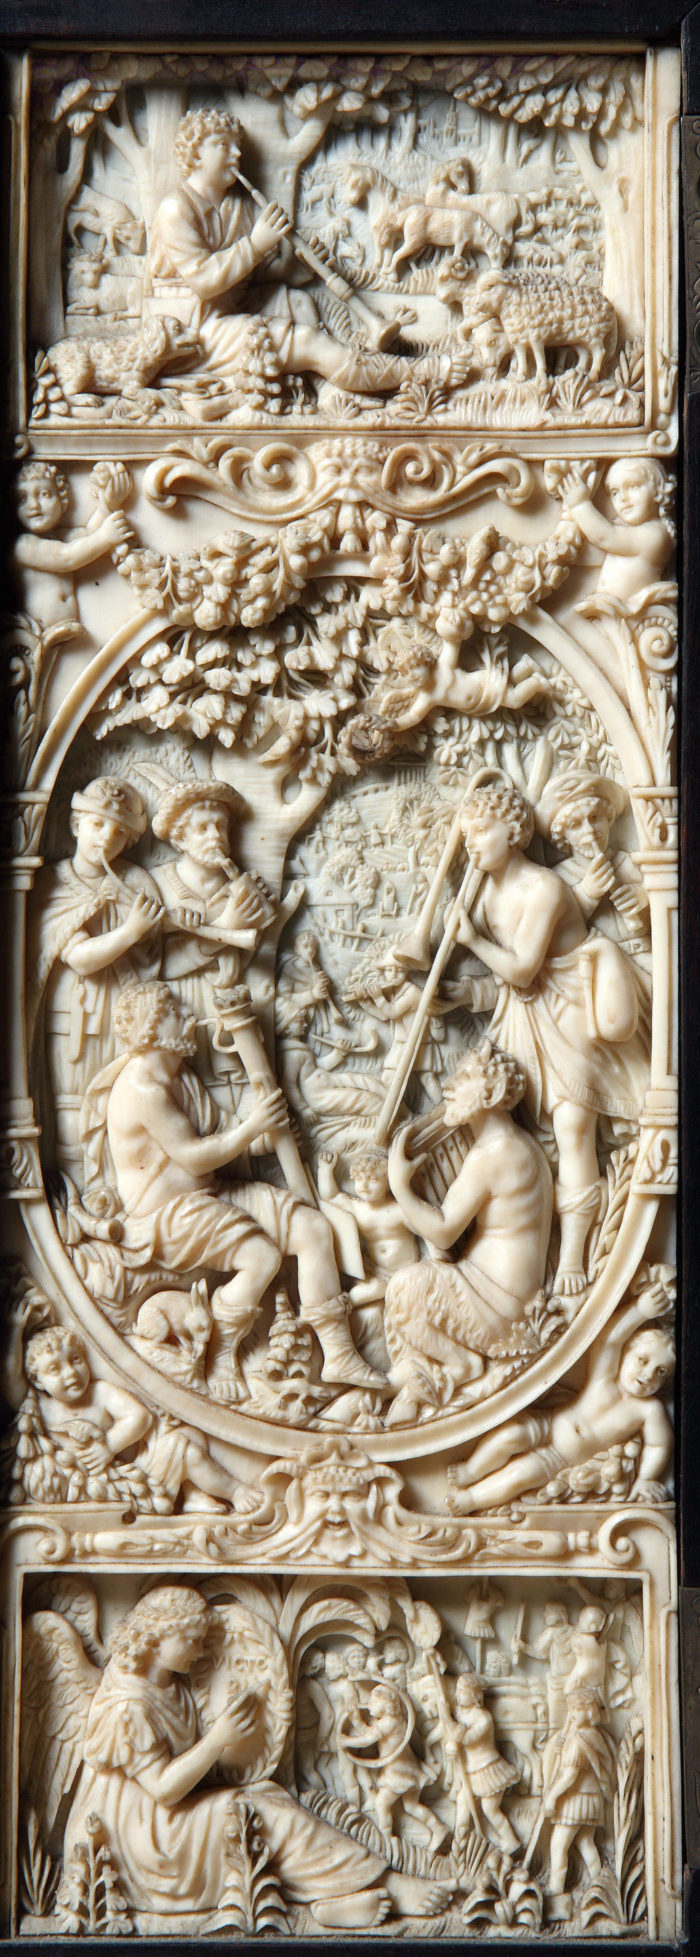 A pair of exceptional, carved, ivory panels after the panels in the Maximillian I Coin Cabinet by  Christof Angermair in the  Bayerische Staatsgemäldesammlung